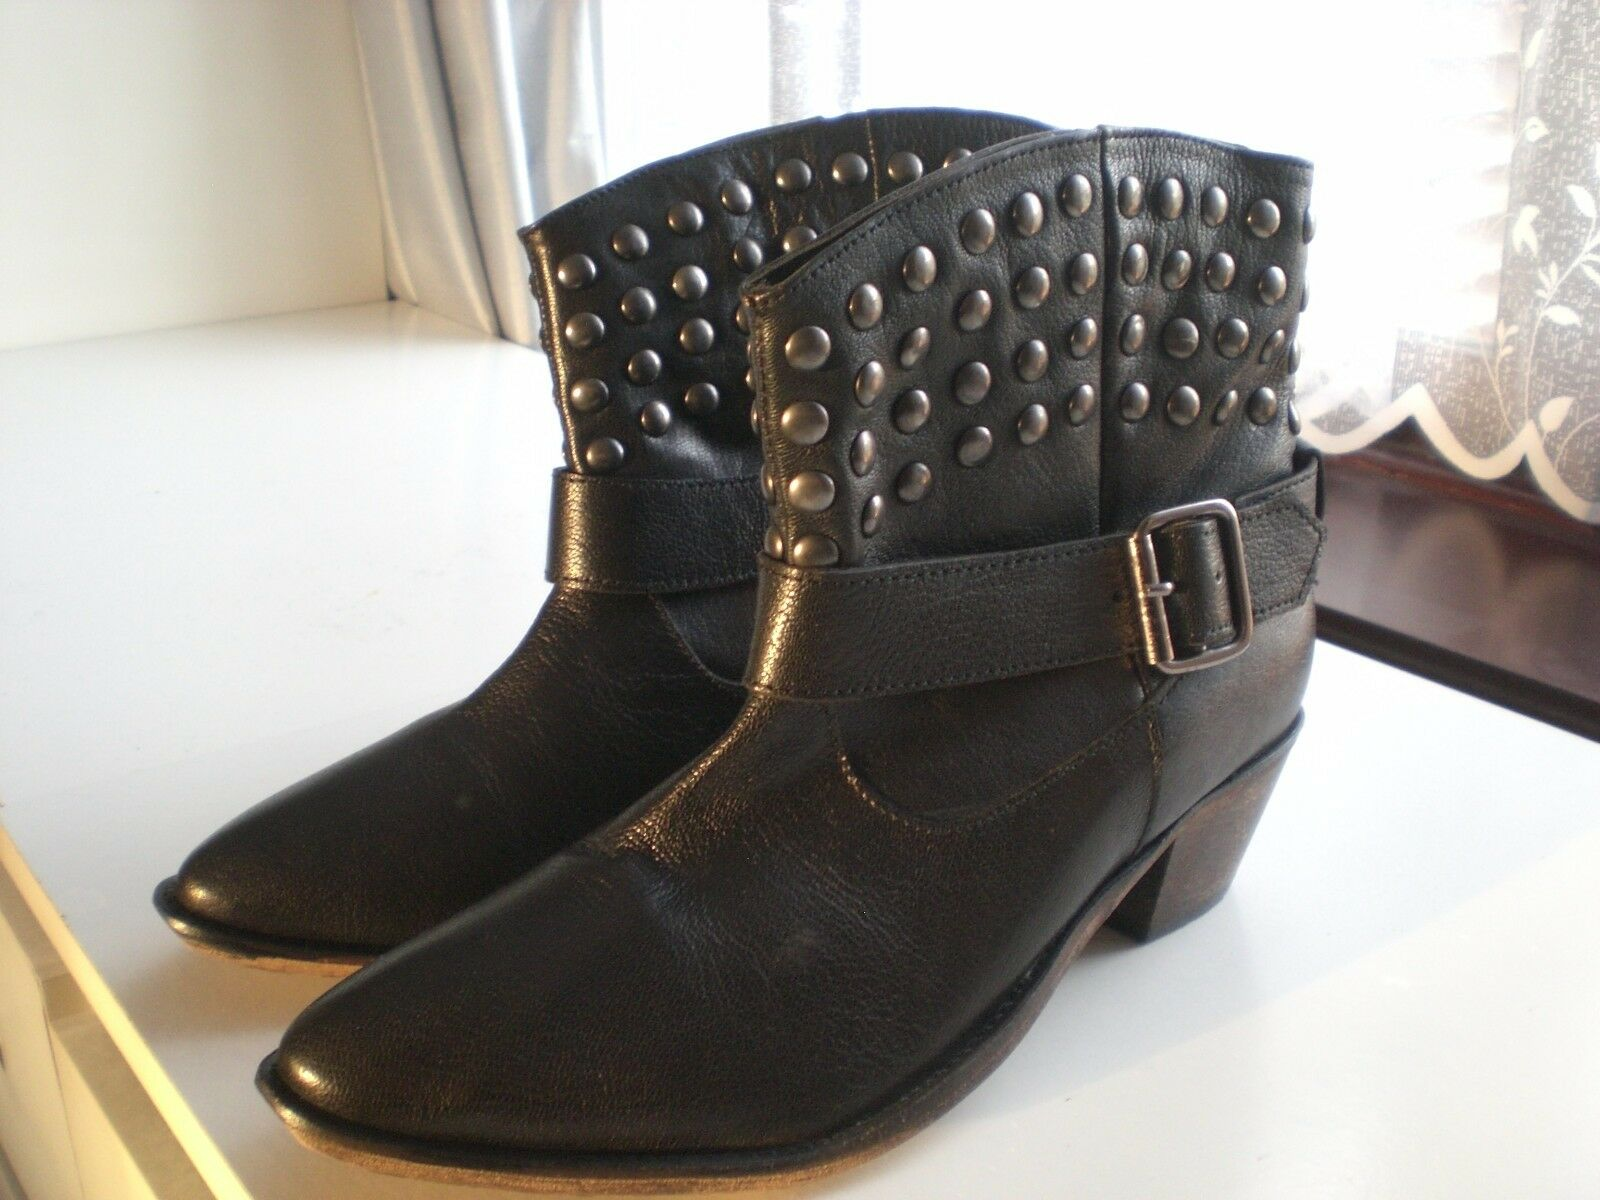 DOROTHY PERKINS - BRAND NEW Stiefel LADIES BLACK STUDDED ANKLE Stiefel NEW - SIZE 8 9058b6